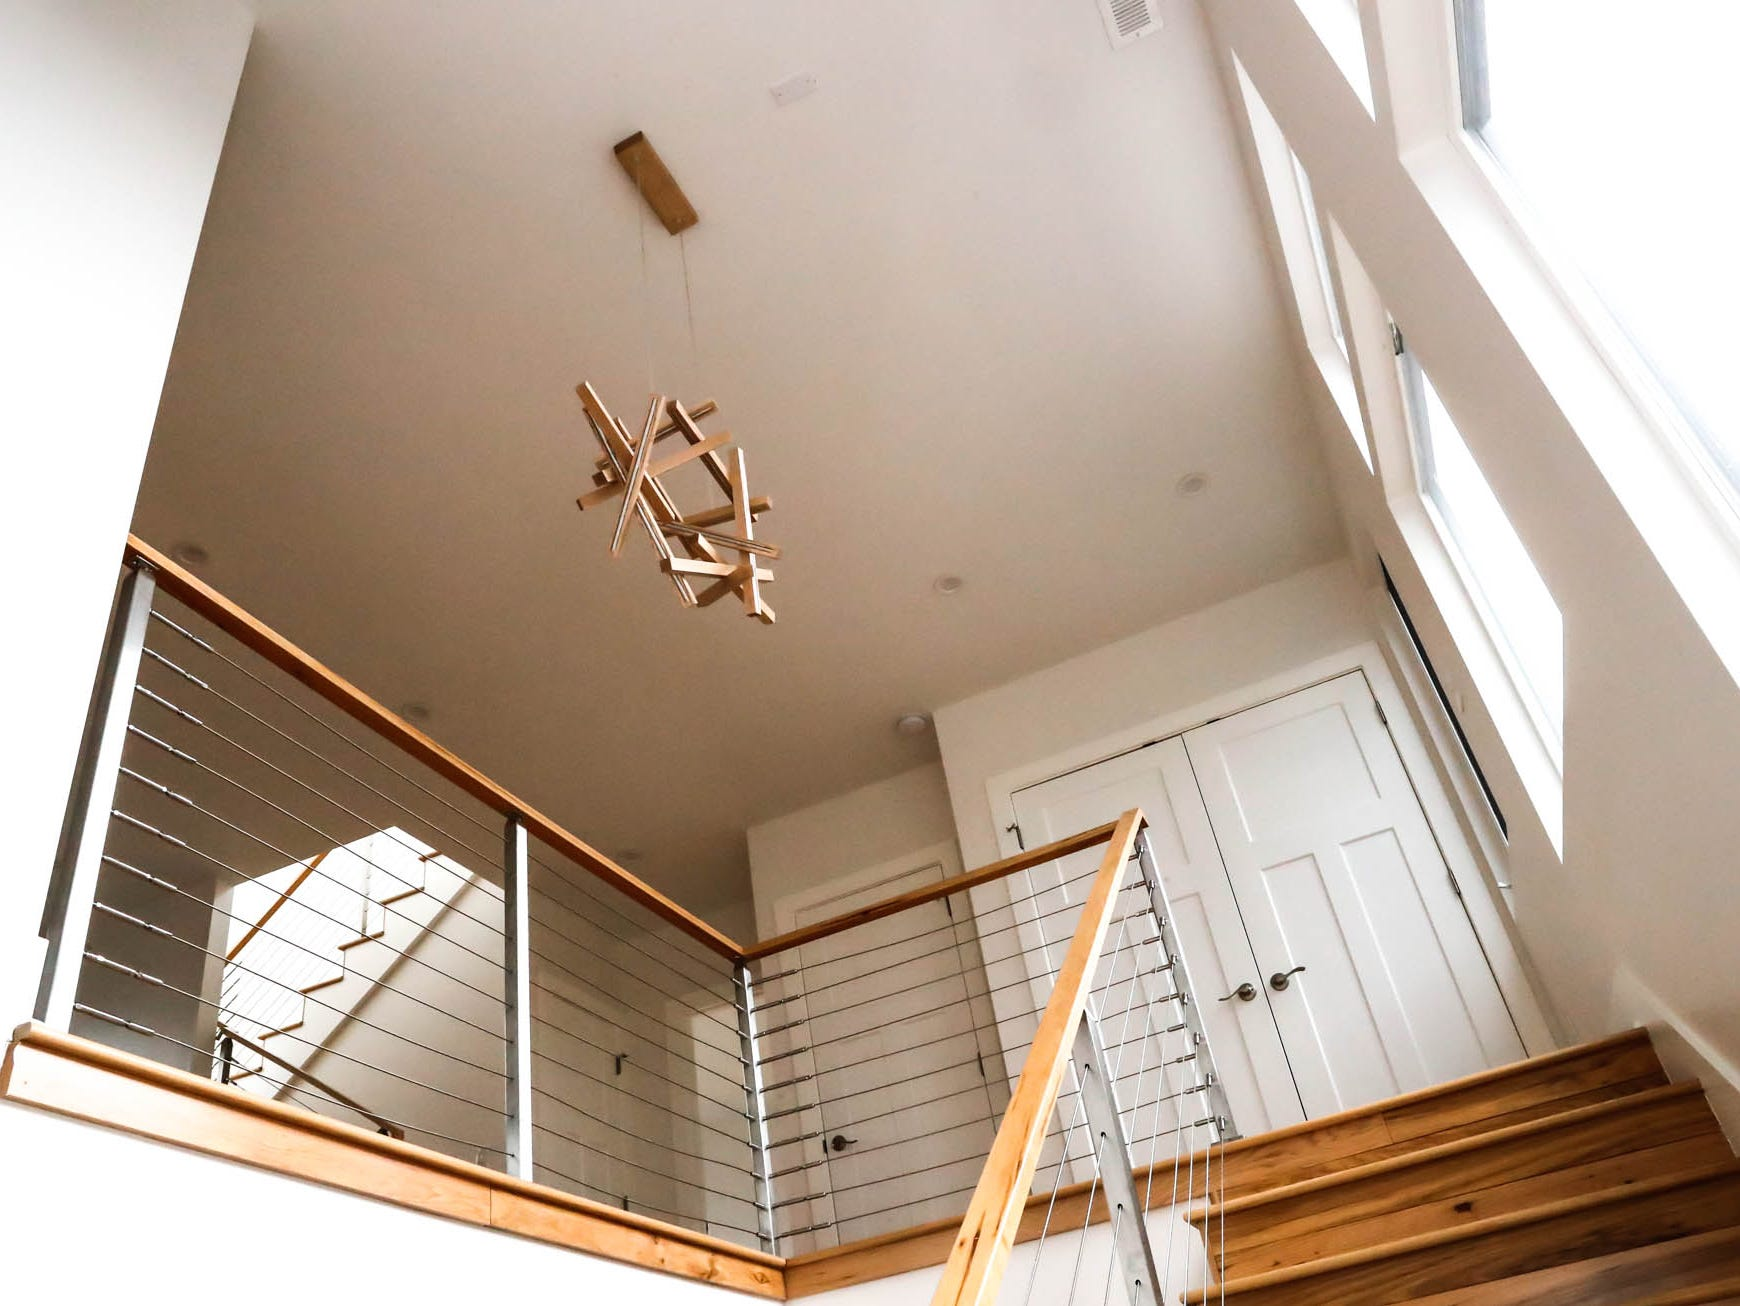 A modern chandelier hangs in an open stairwell Inside a newly built modern architectural home up for sale at 1134 Woodlawn Ave., Indianapolis, Ind., 46203, in the heart of the historic Fountain Square neighborhood on Wednesday, January 23, 2019. The three-story home, which features 2,030-square-feet and an open space concept tile and hardwood floors are priced at $479,900.